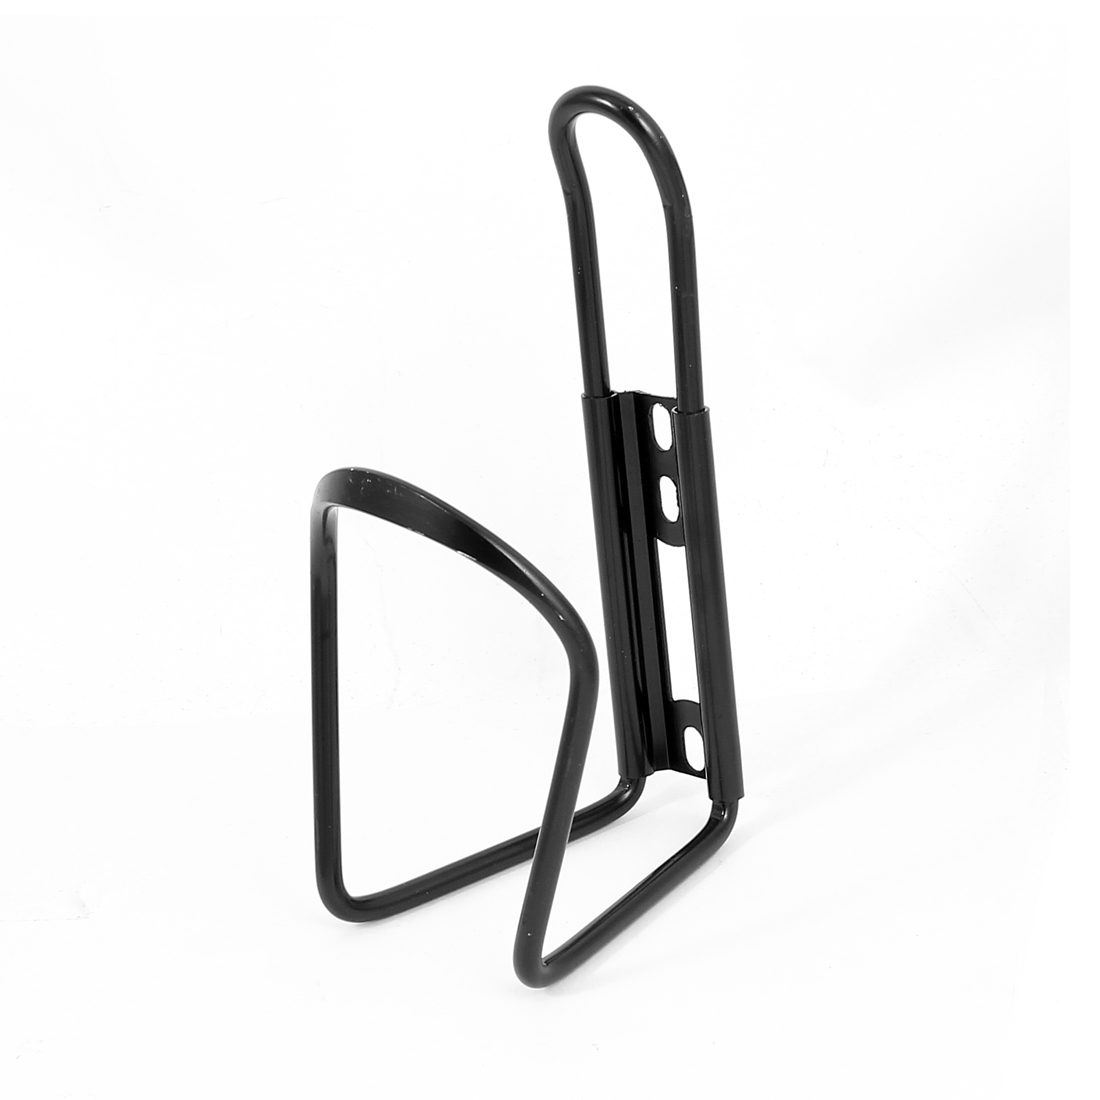 Black Aluminum Alloyl Bottle Cage Bracket Holder for Bicycle Cycling